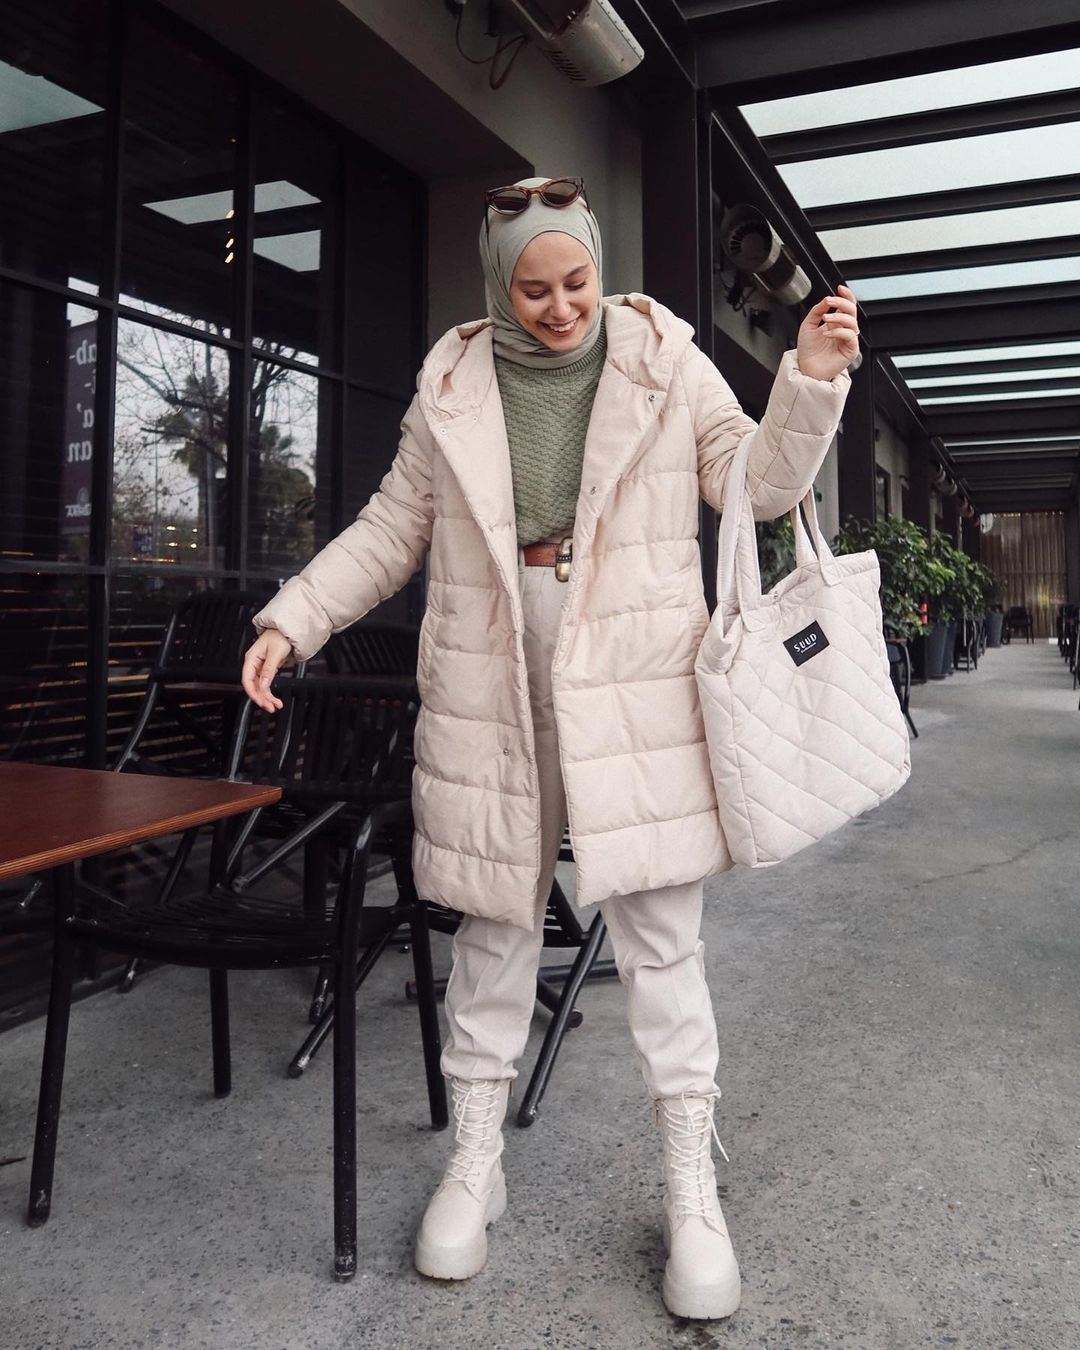 2020 Puffer Jacket Trend To Complete Your Hijab Winter Looks